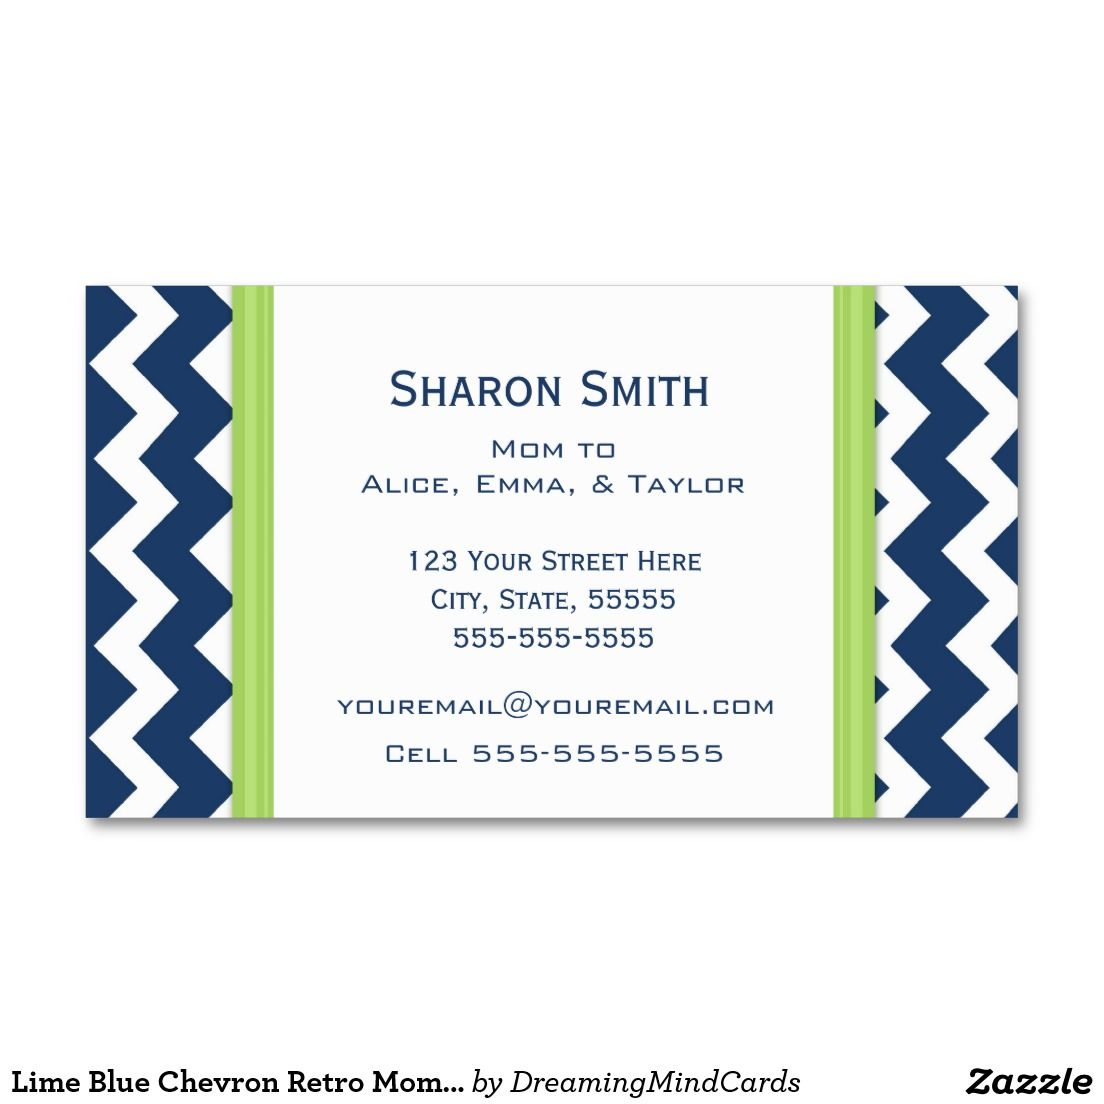 Printable babysitting business cards google search babysitting printable babysitting business cards google search alramifo Gallery